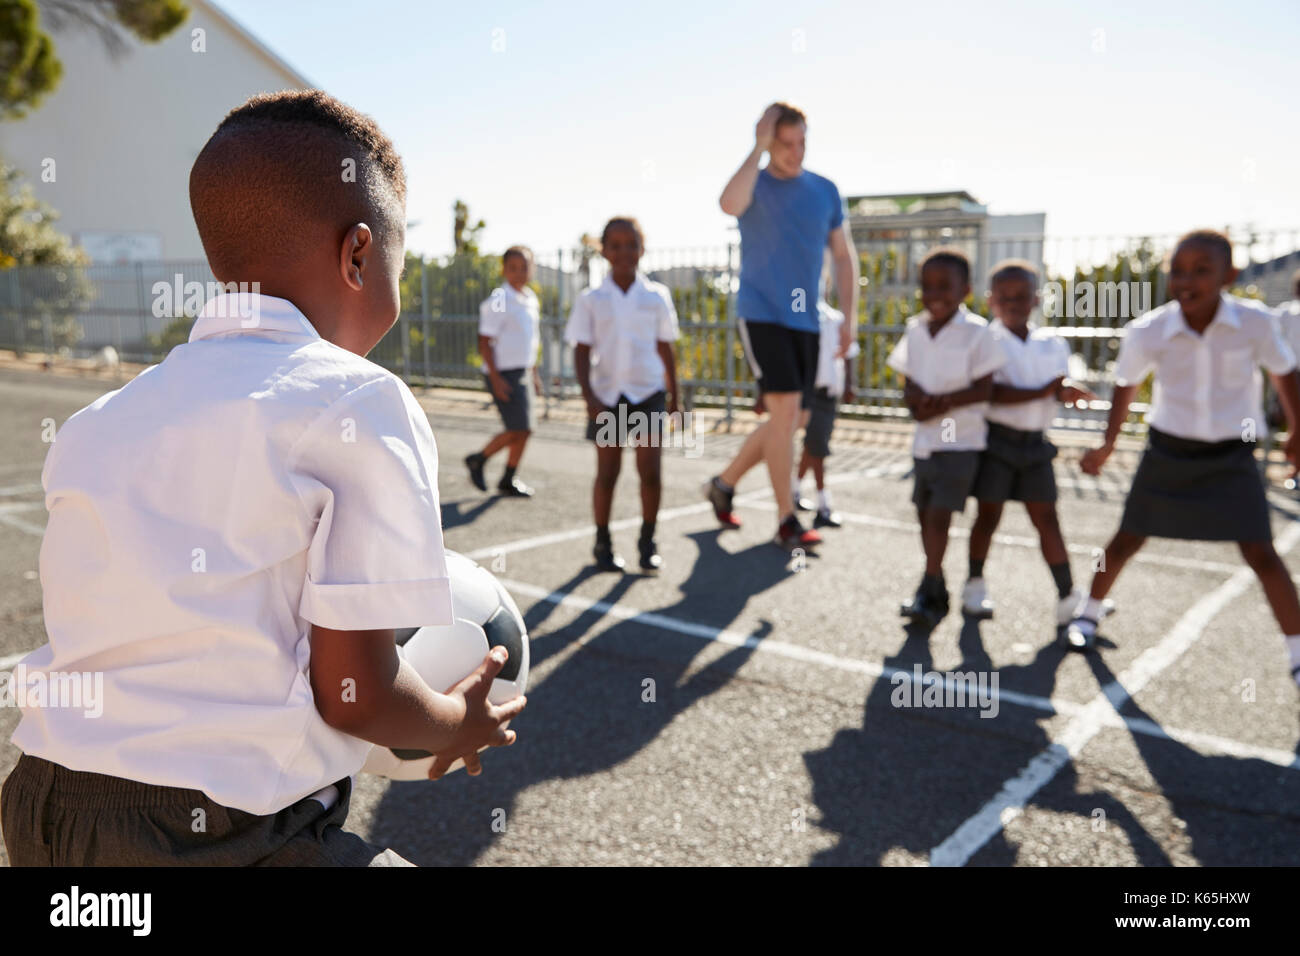 Teacher plays football with young kids in school playground - Stock Image